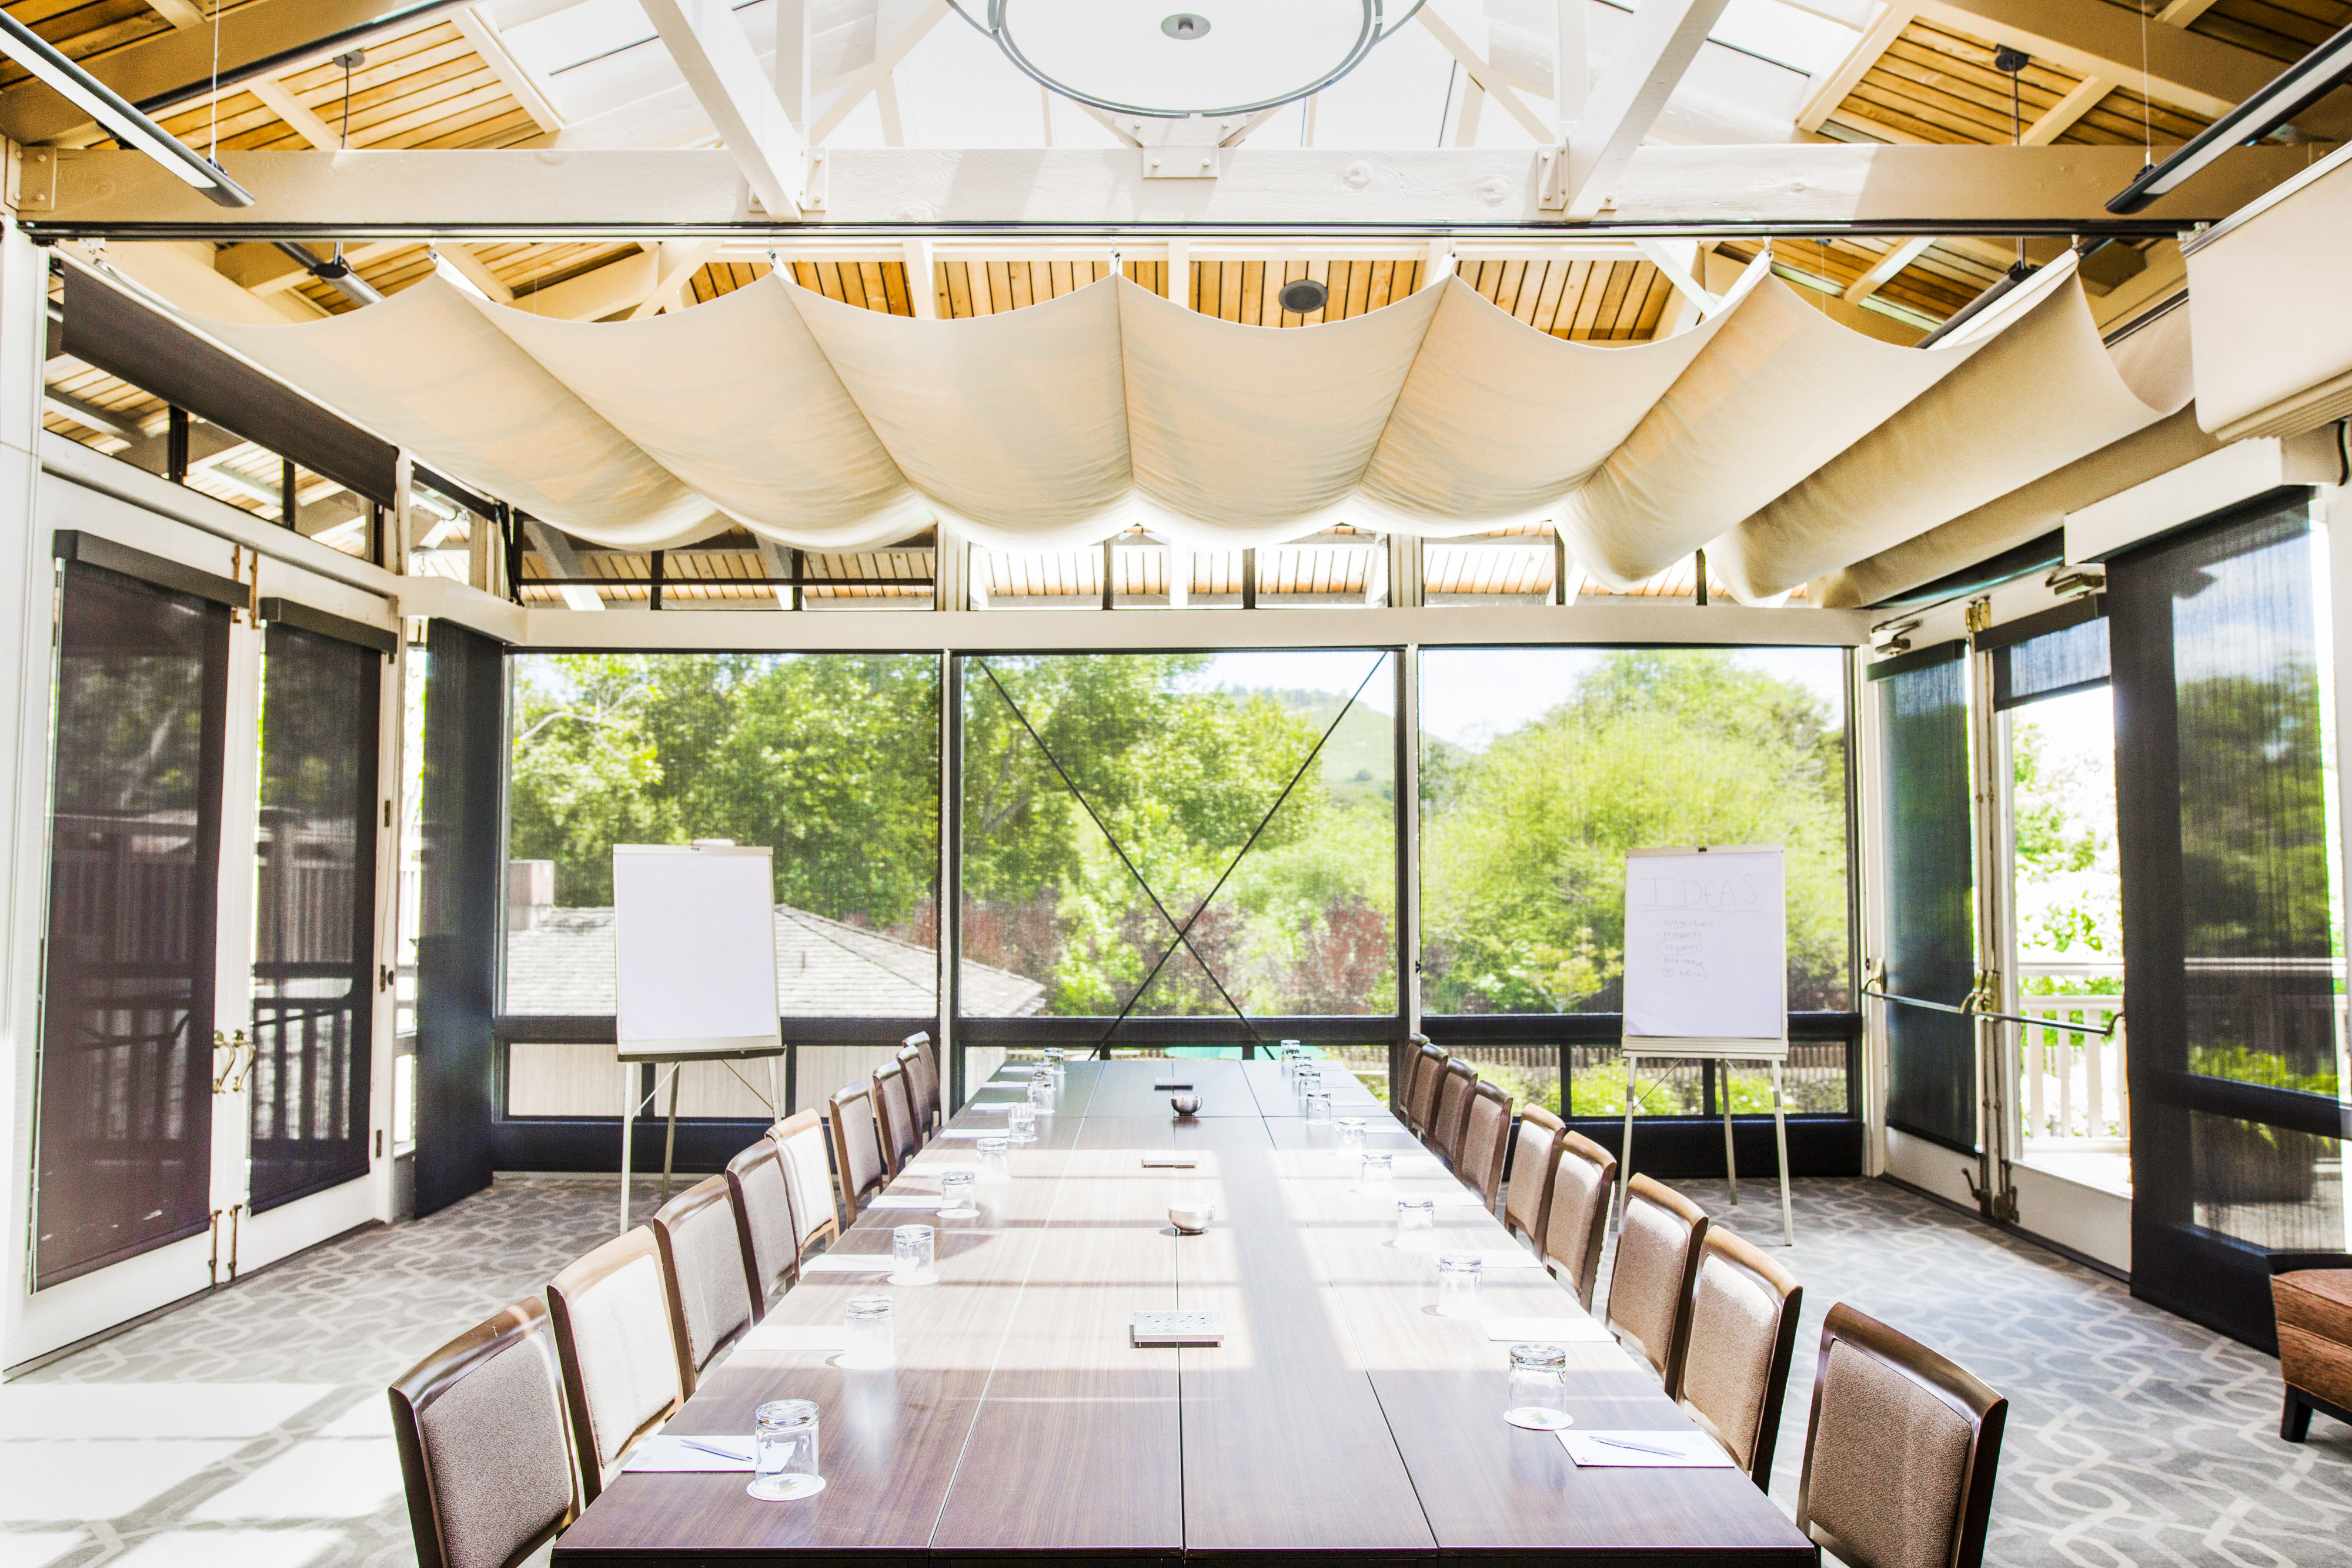 Garden Room board Room Style with Flip Charts and views of Clubhouse Pool